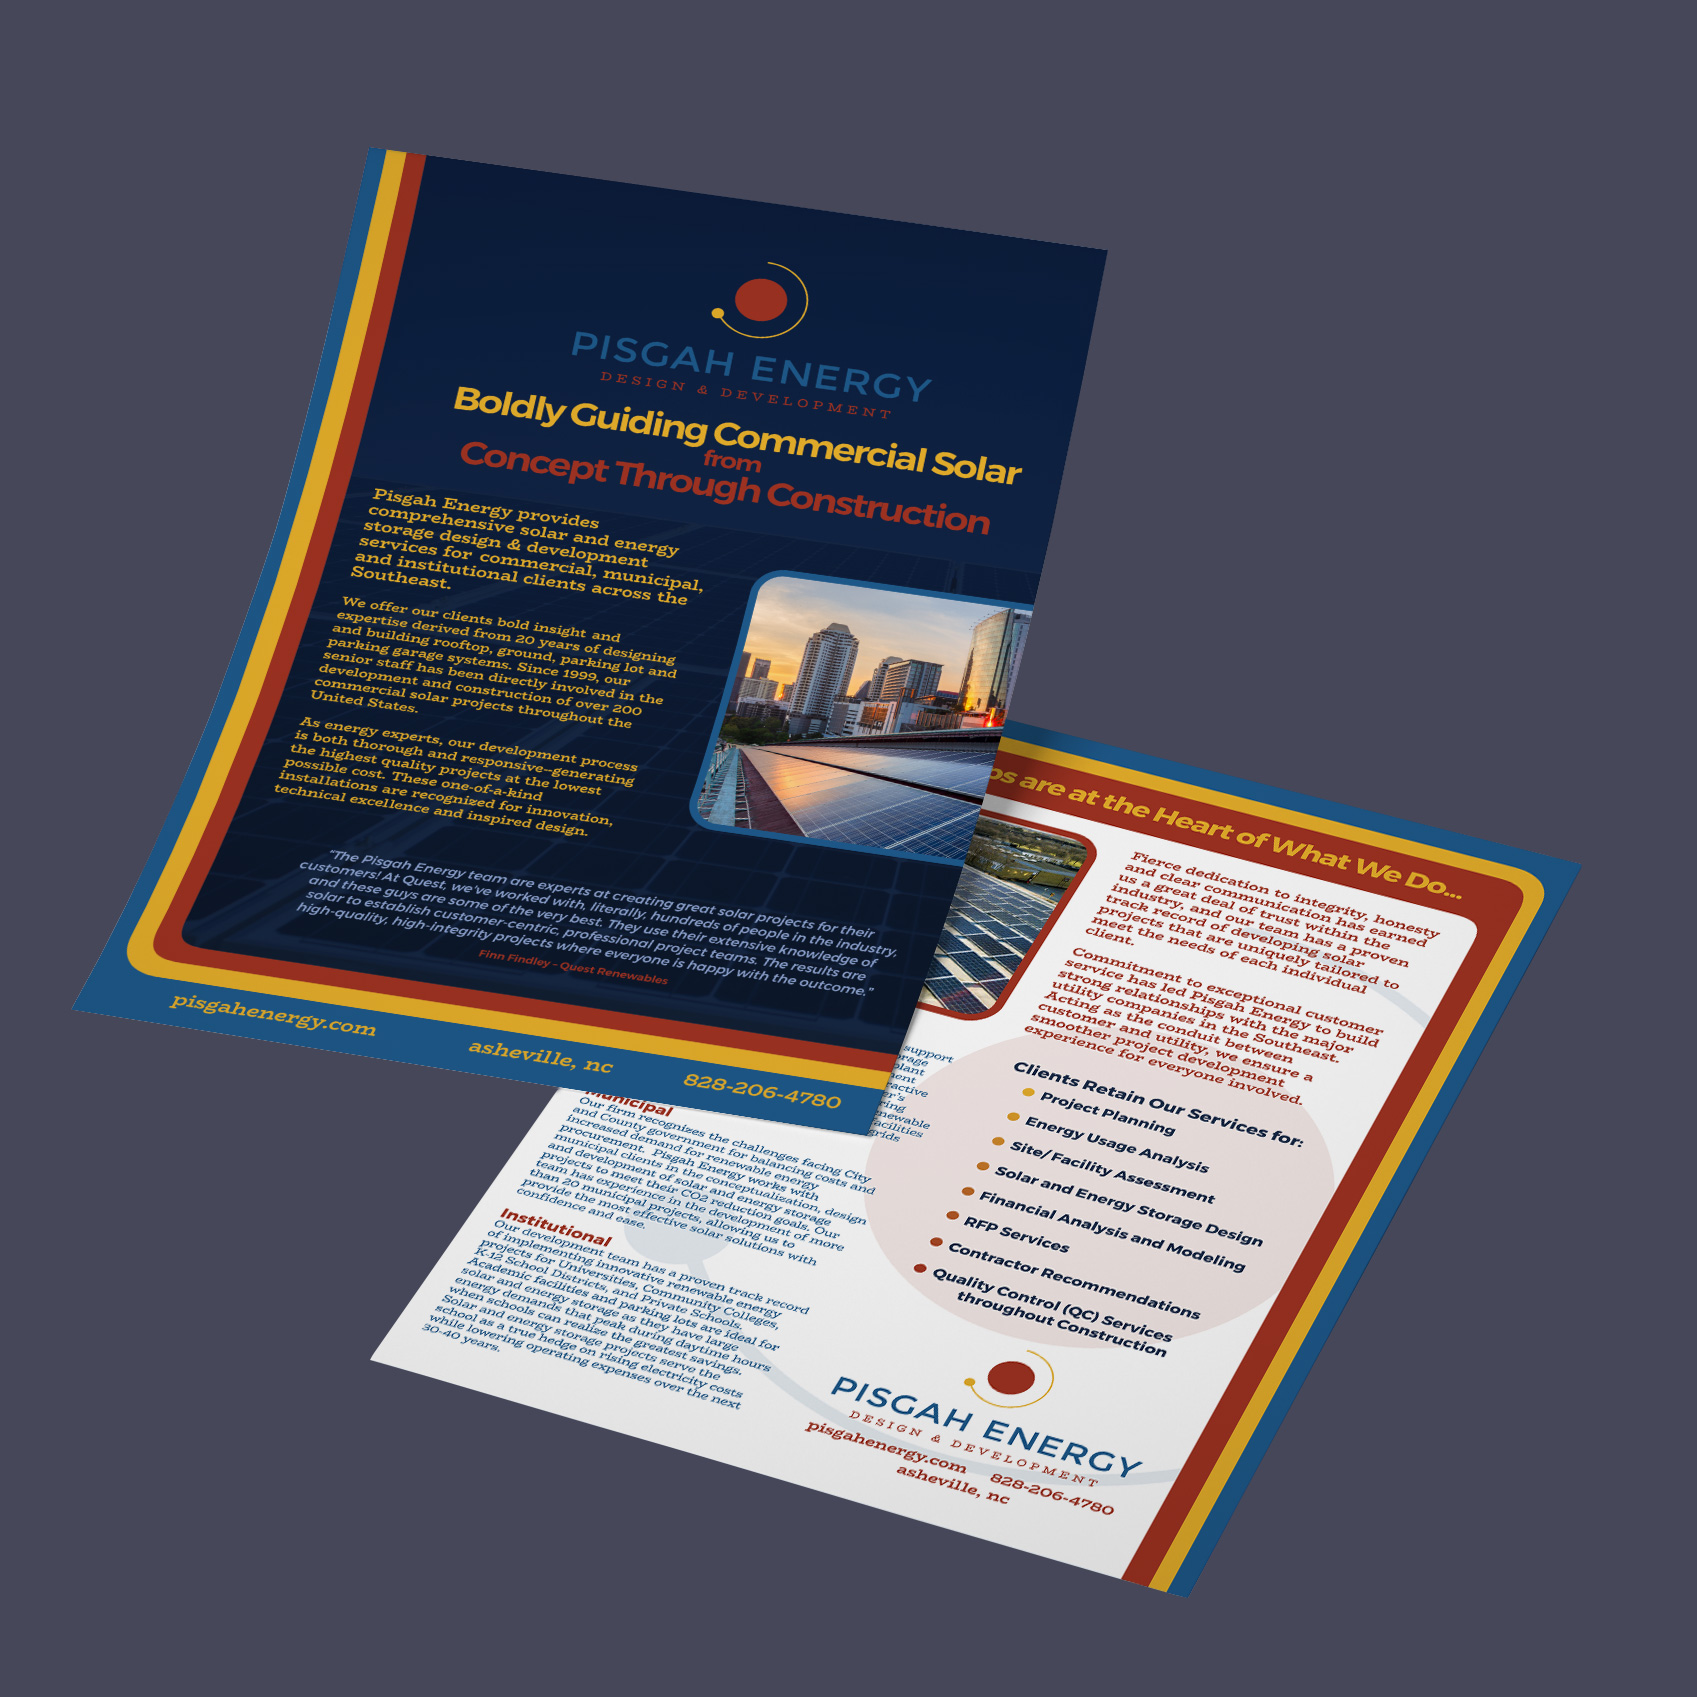 Sales Sheet Design - Pisgah Energy